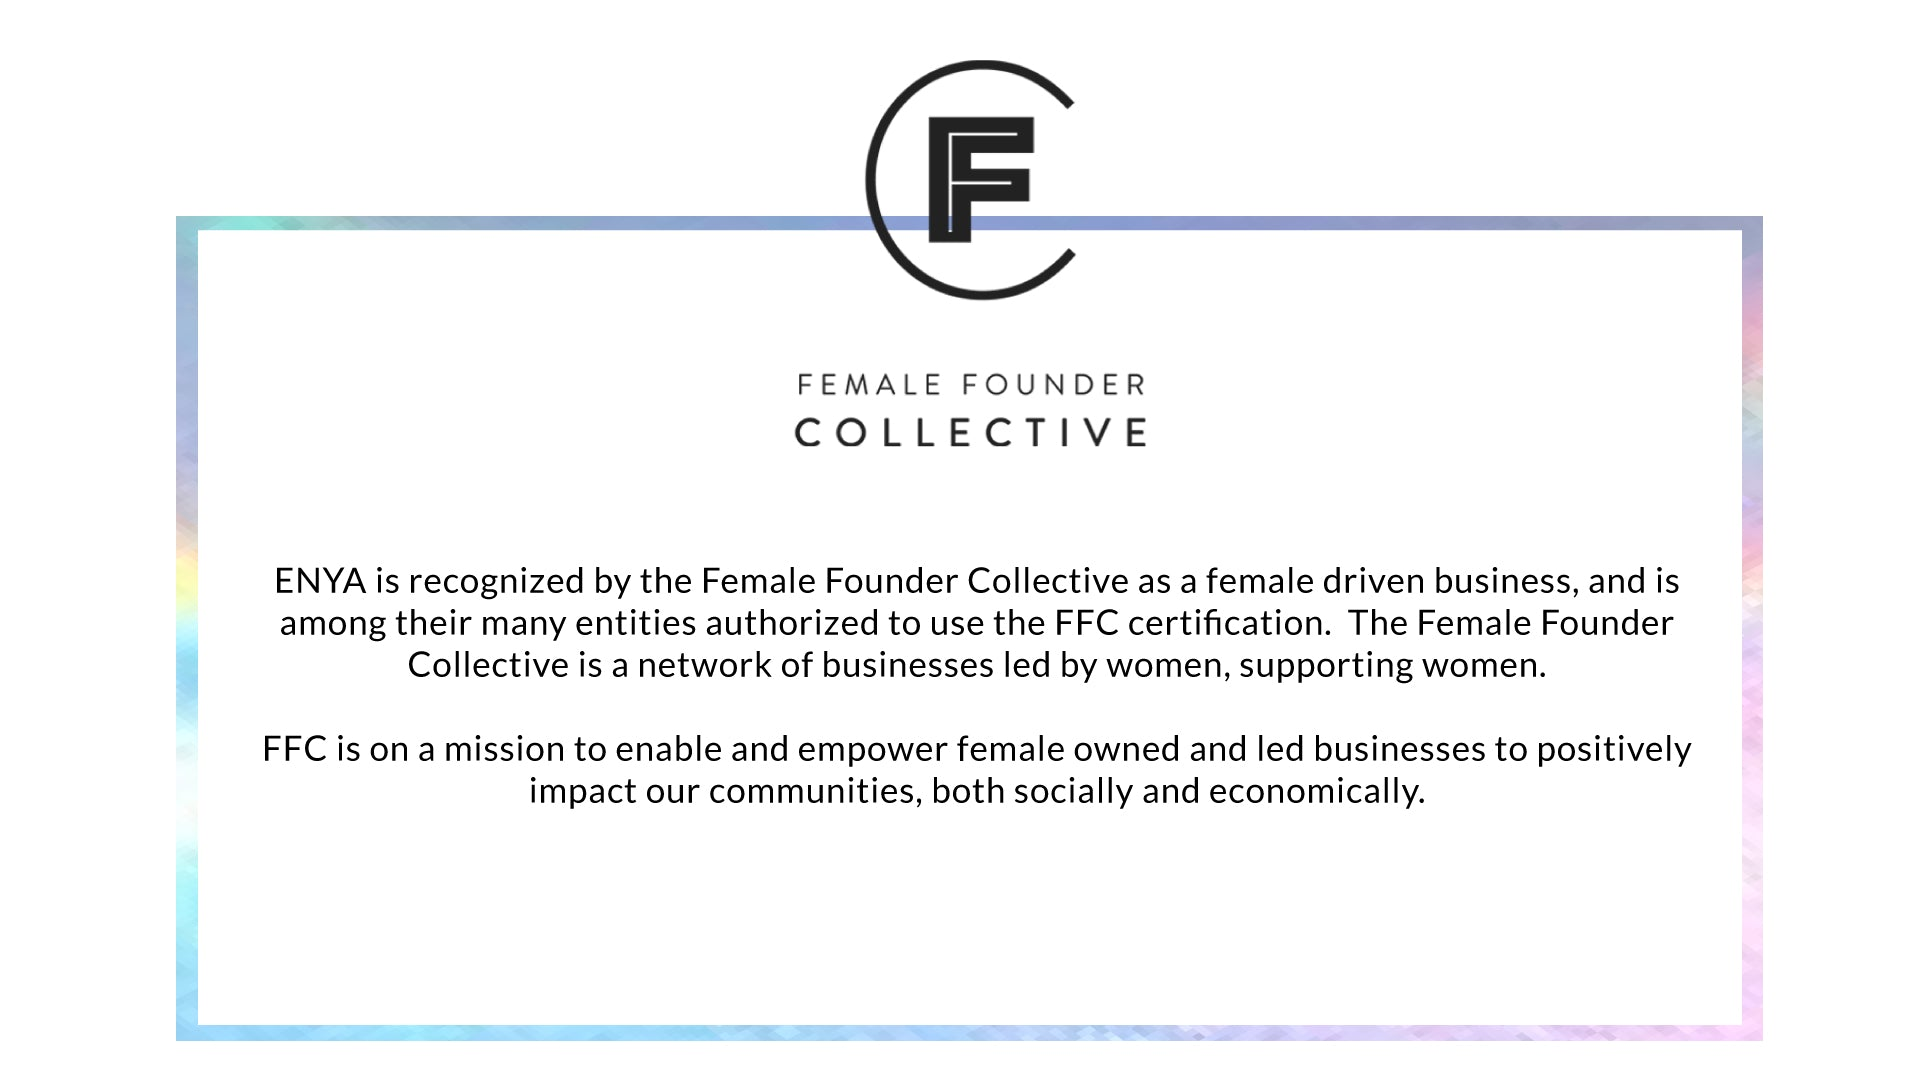 ffc female founders collective Enya Malaysia